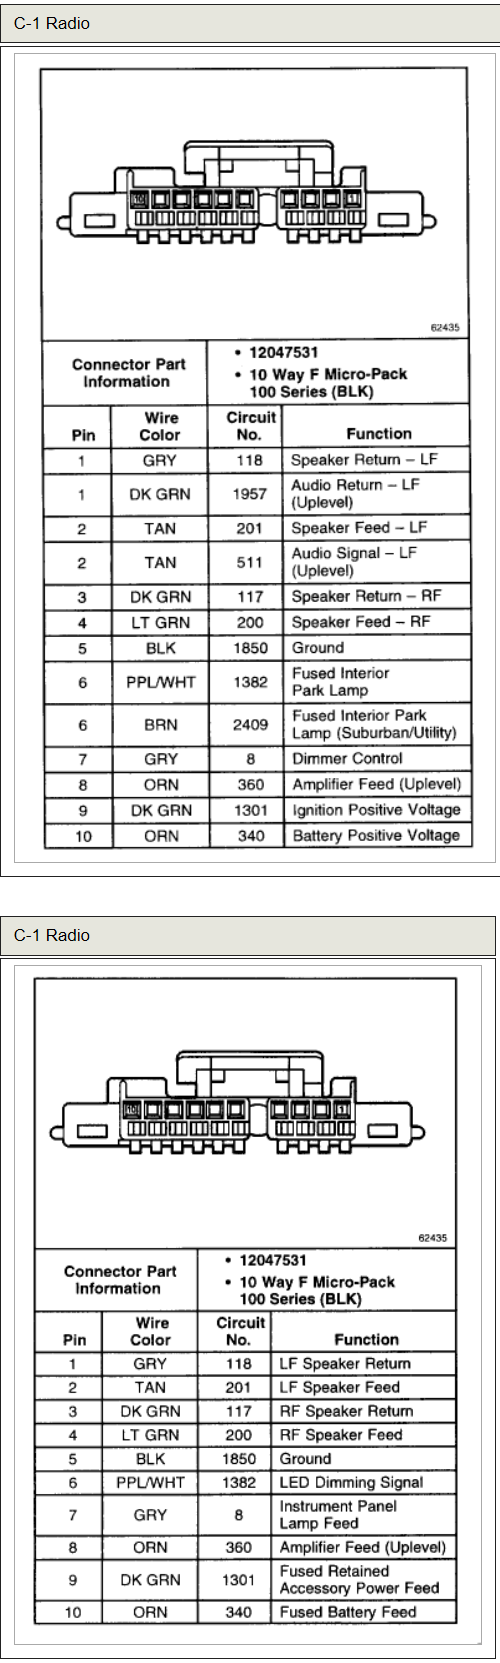 Chevrolet Tahoe LS 2000 stereo wiring connector 2 chevrolet car radio stereo audio wiring diagram autoradio 2012 chevy cruze radio wiring diagram at edmiracle.co